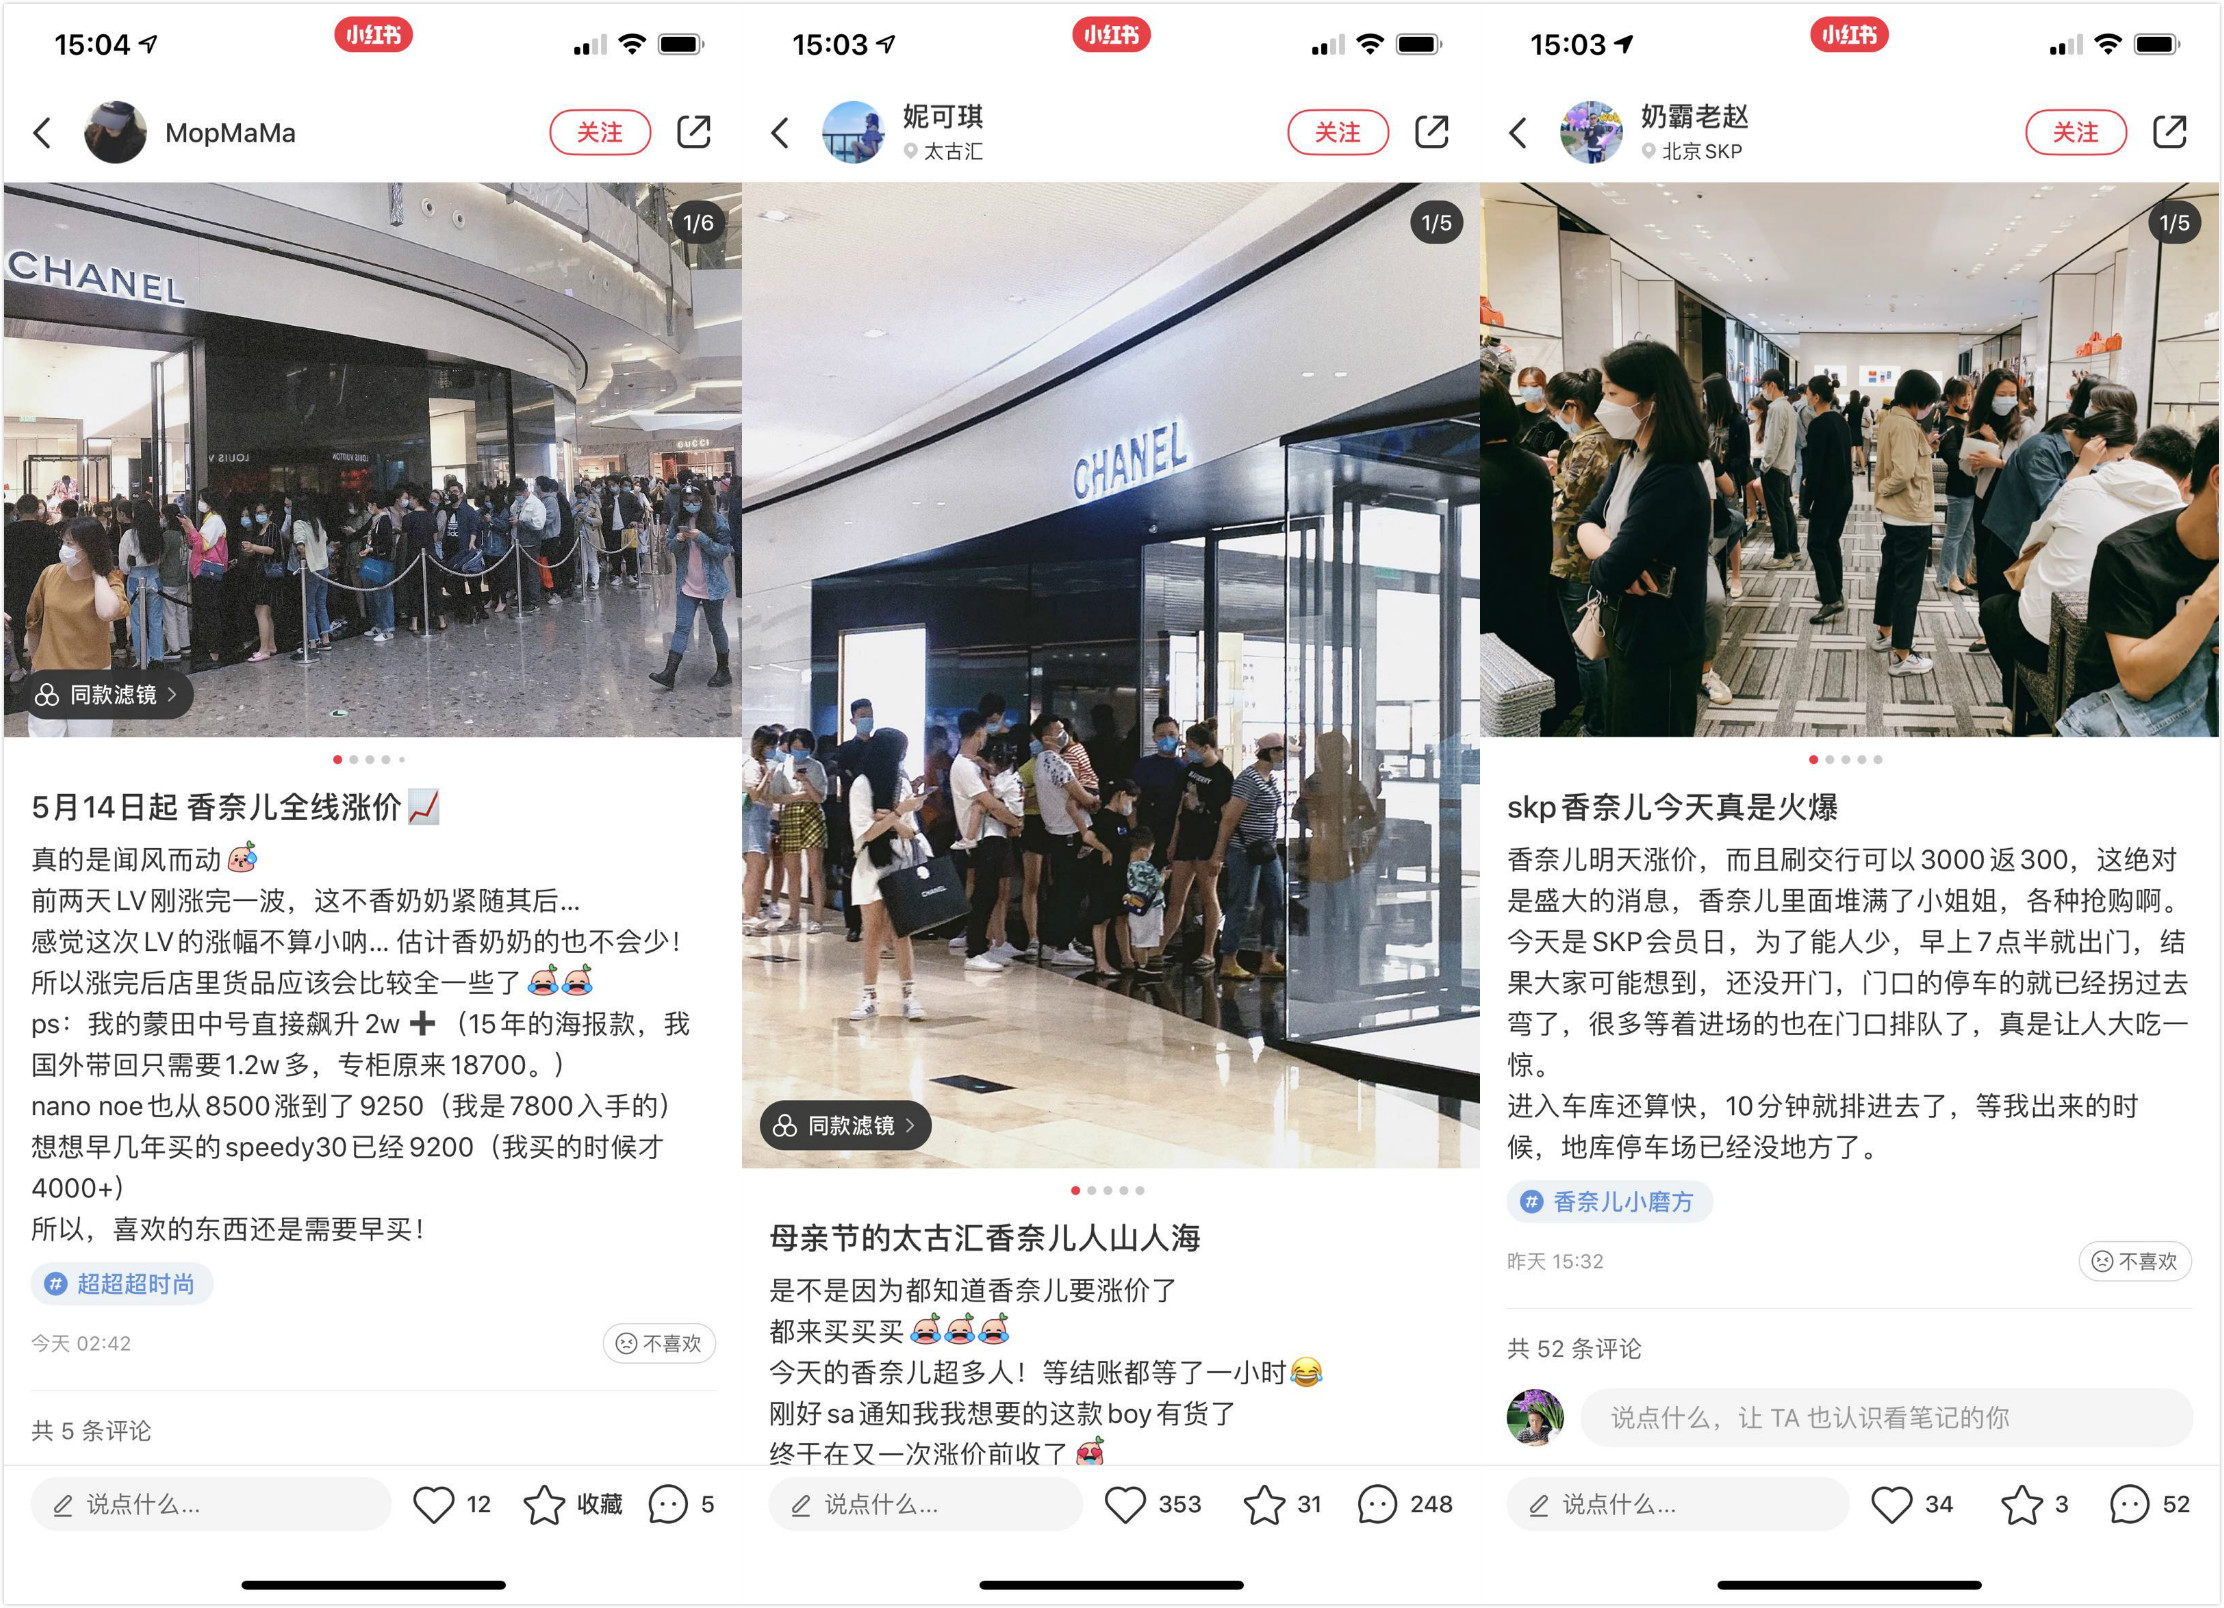 Xiaohongshu users documented busy scenes in Chanel stores across China on Sunday, as rumors of significant price increases taking effect on Monday began to spread on social media.